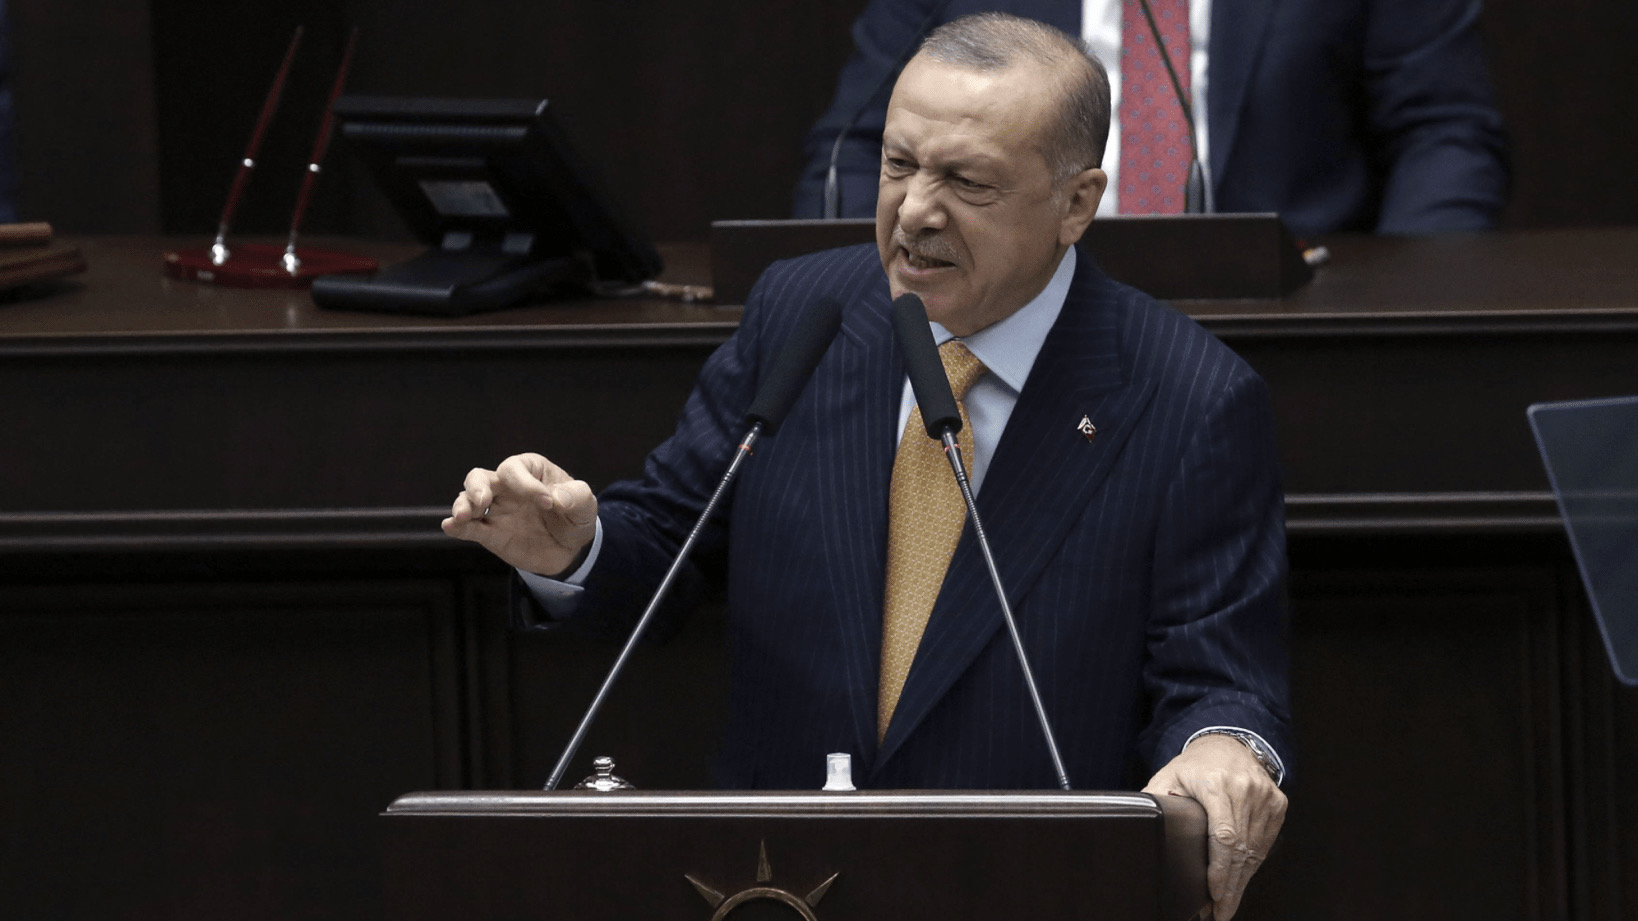 European Union: Facing the bellicose Erdogan